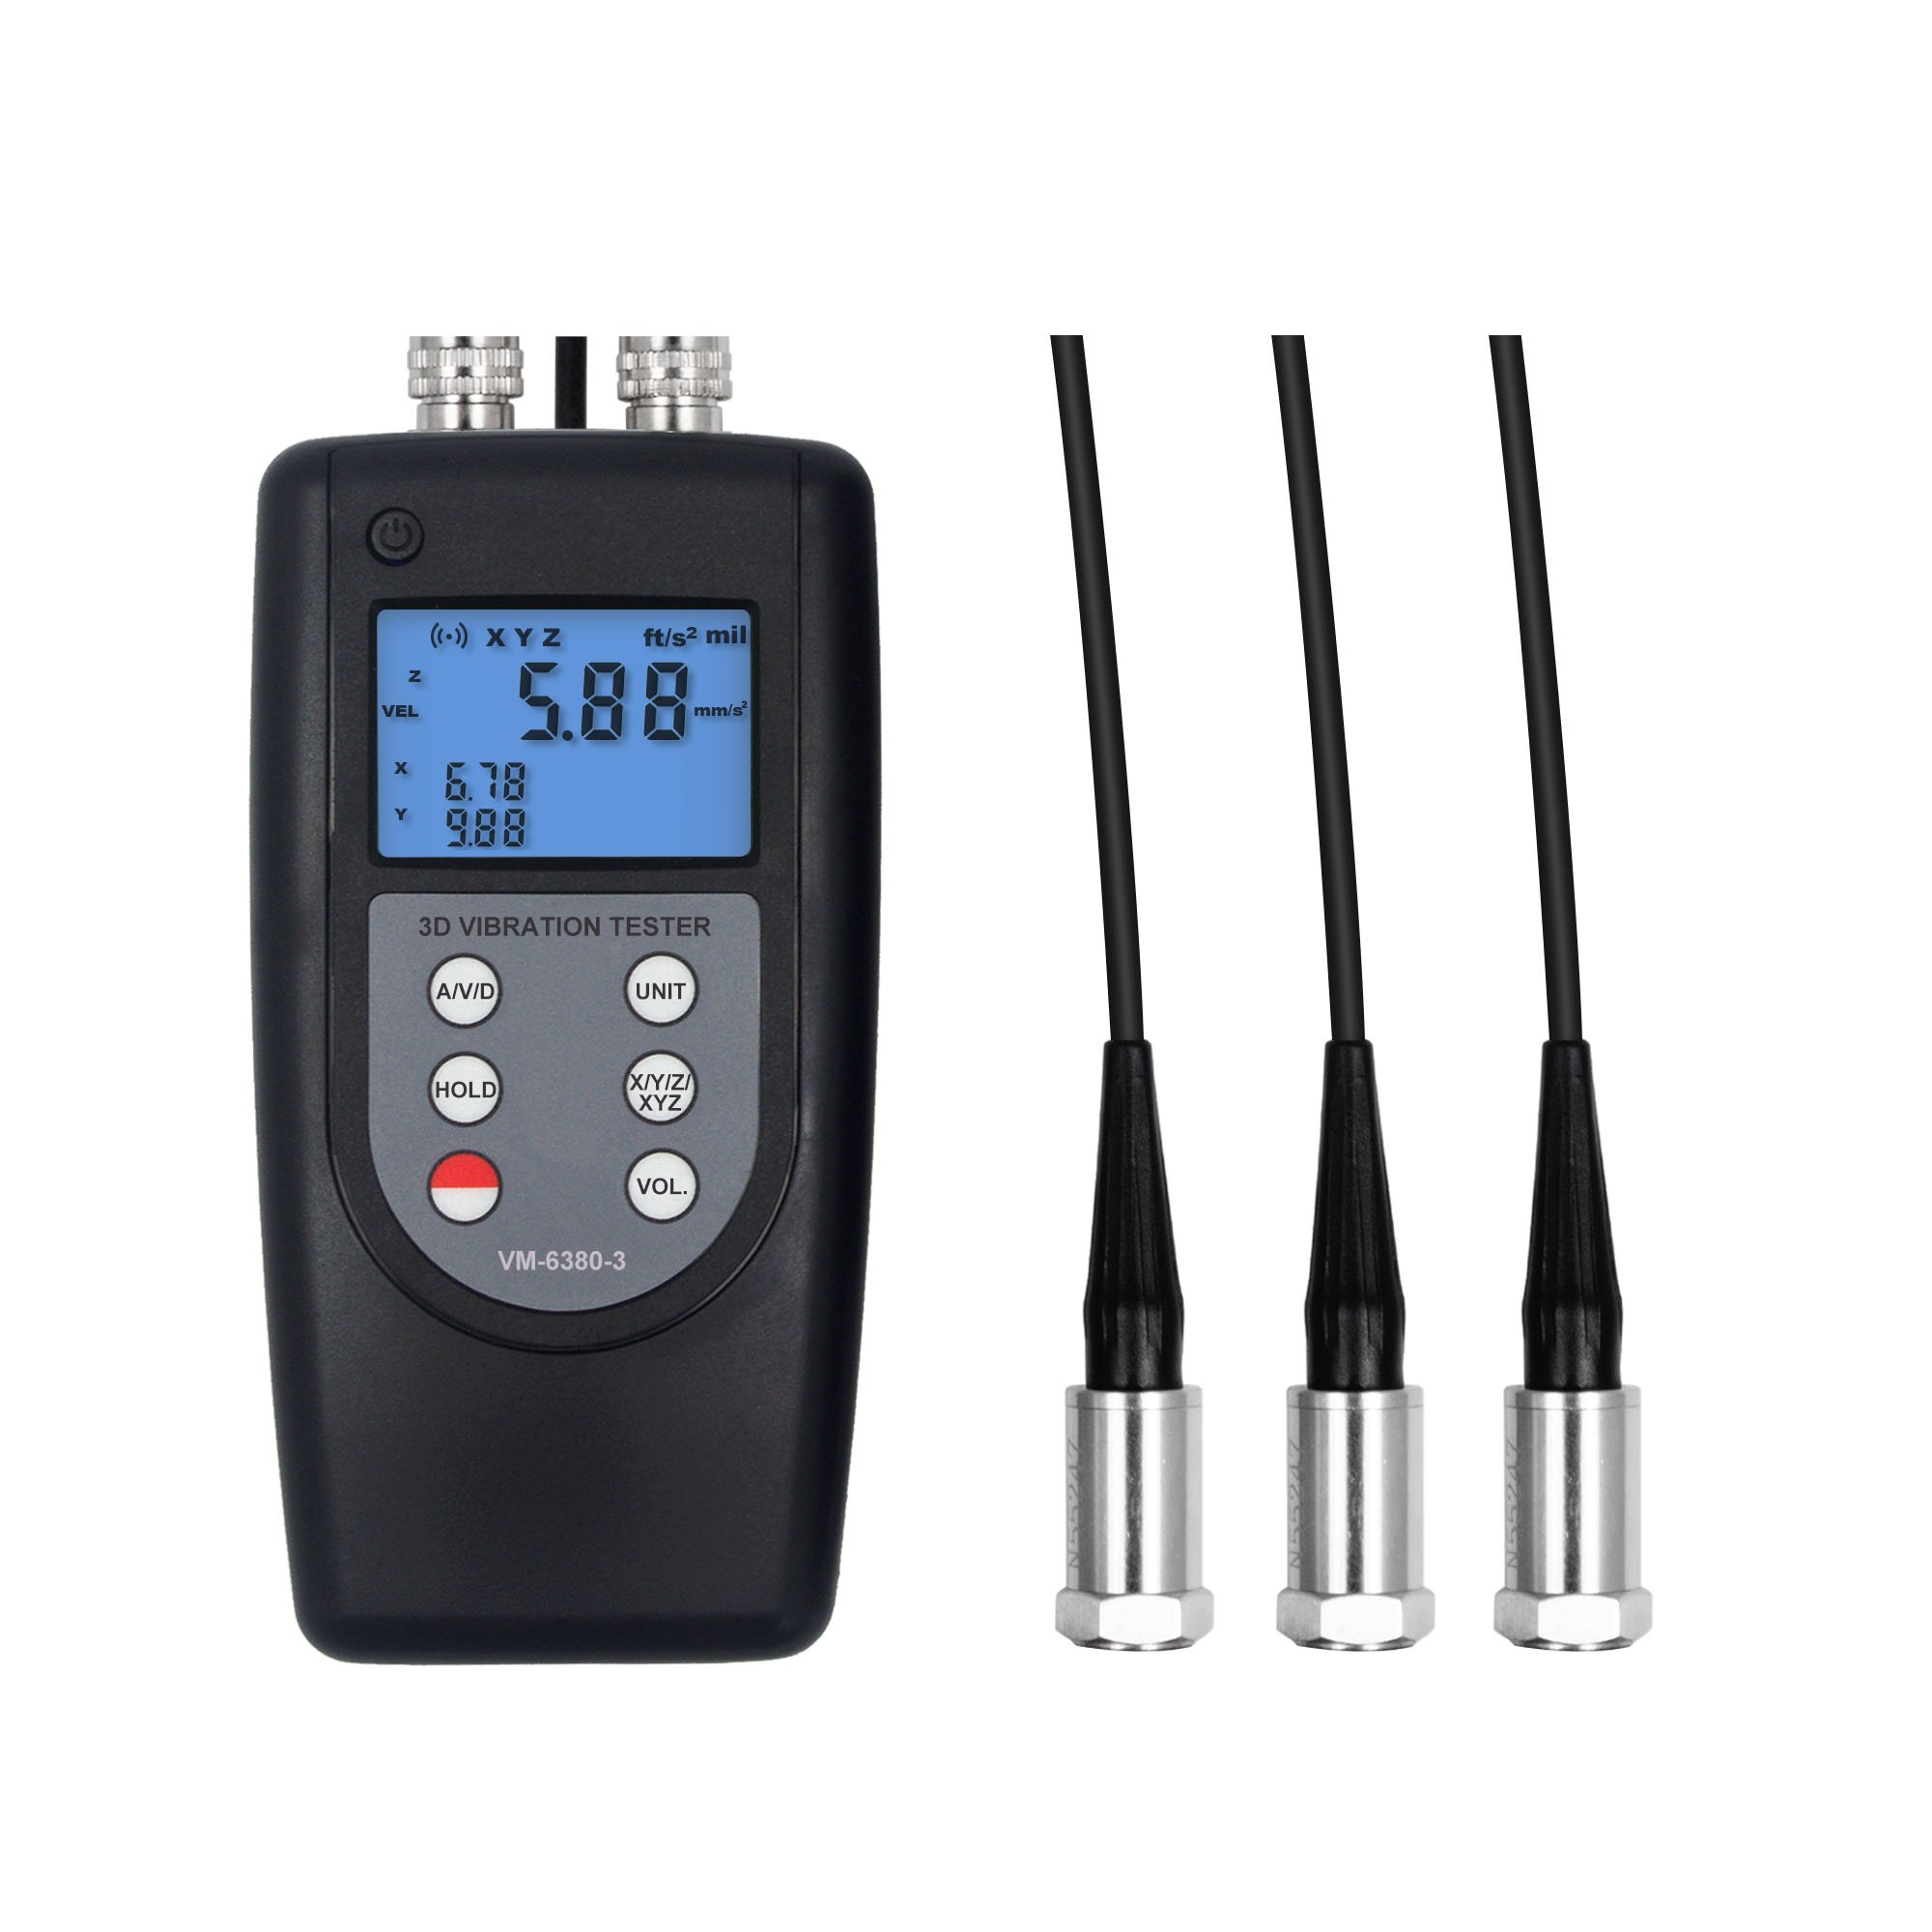 Landtek Vibration Meter Tester VM-6380-3 Imblance & Moving Measurement 3 Channels Parameters 0.1~400m/s² 10Hz~10kHz